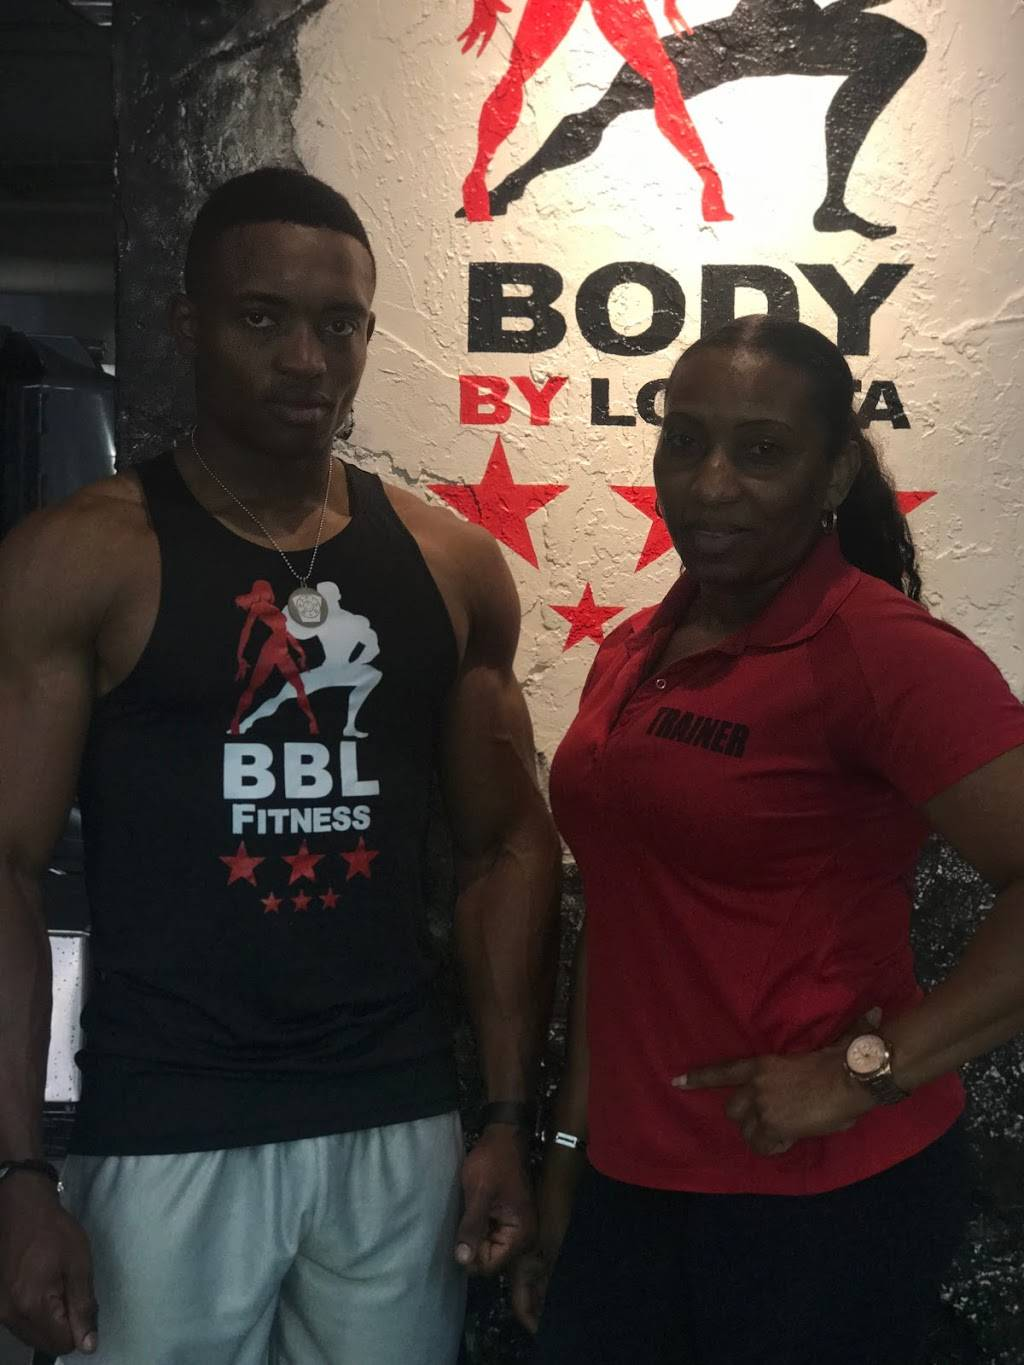 BBL Fitness - gym  | Photo 9 of 10 | Address: 20170 Pines Blvd, Pembroke Pines, FL 33029, USA | Phone: (754) 400-7340